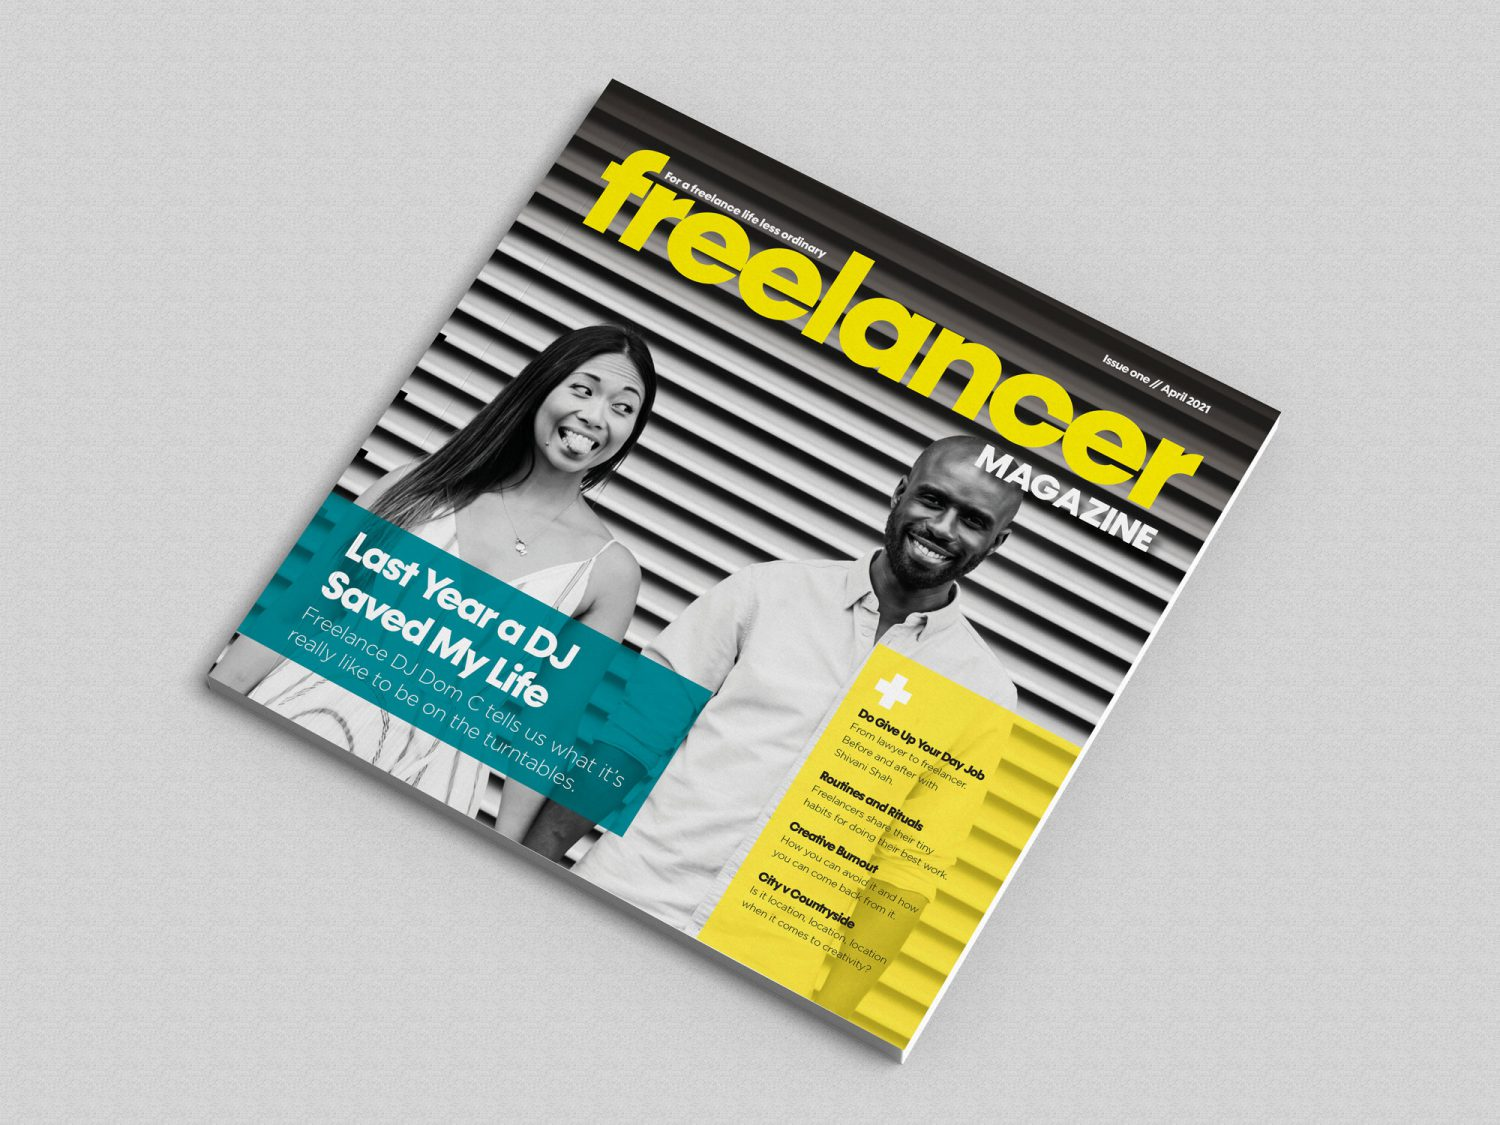 Freelancer magazine